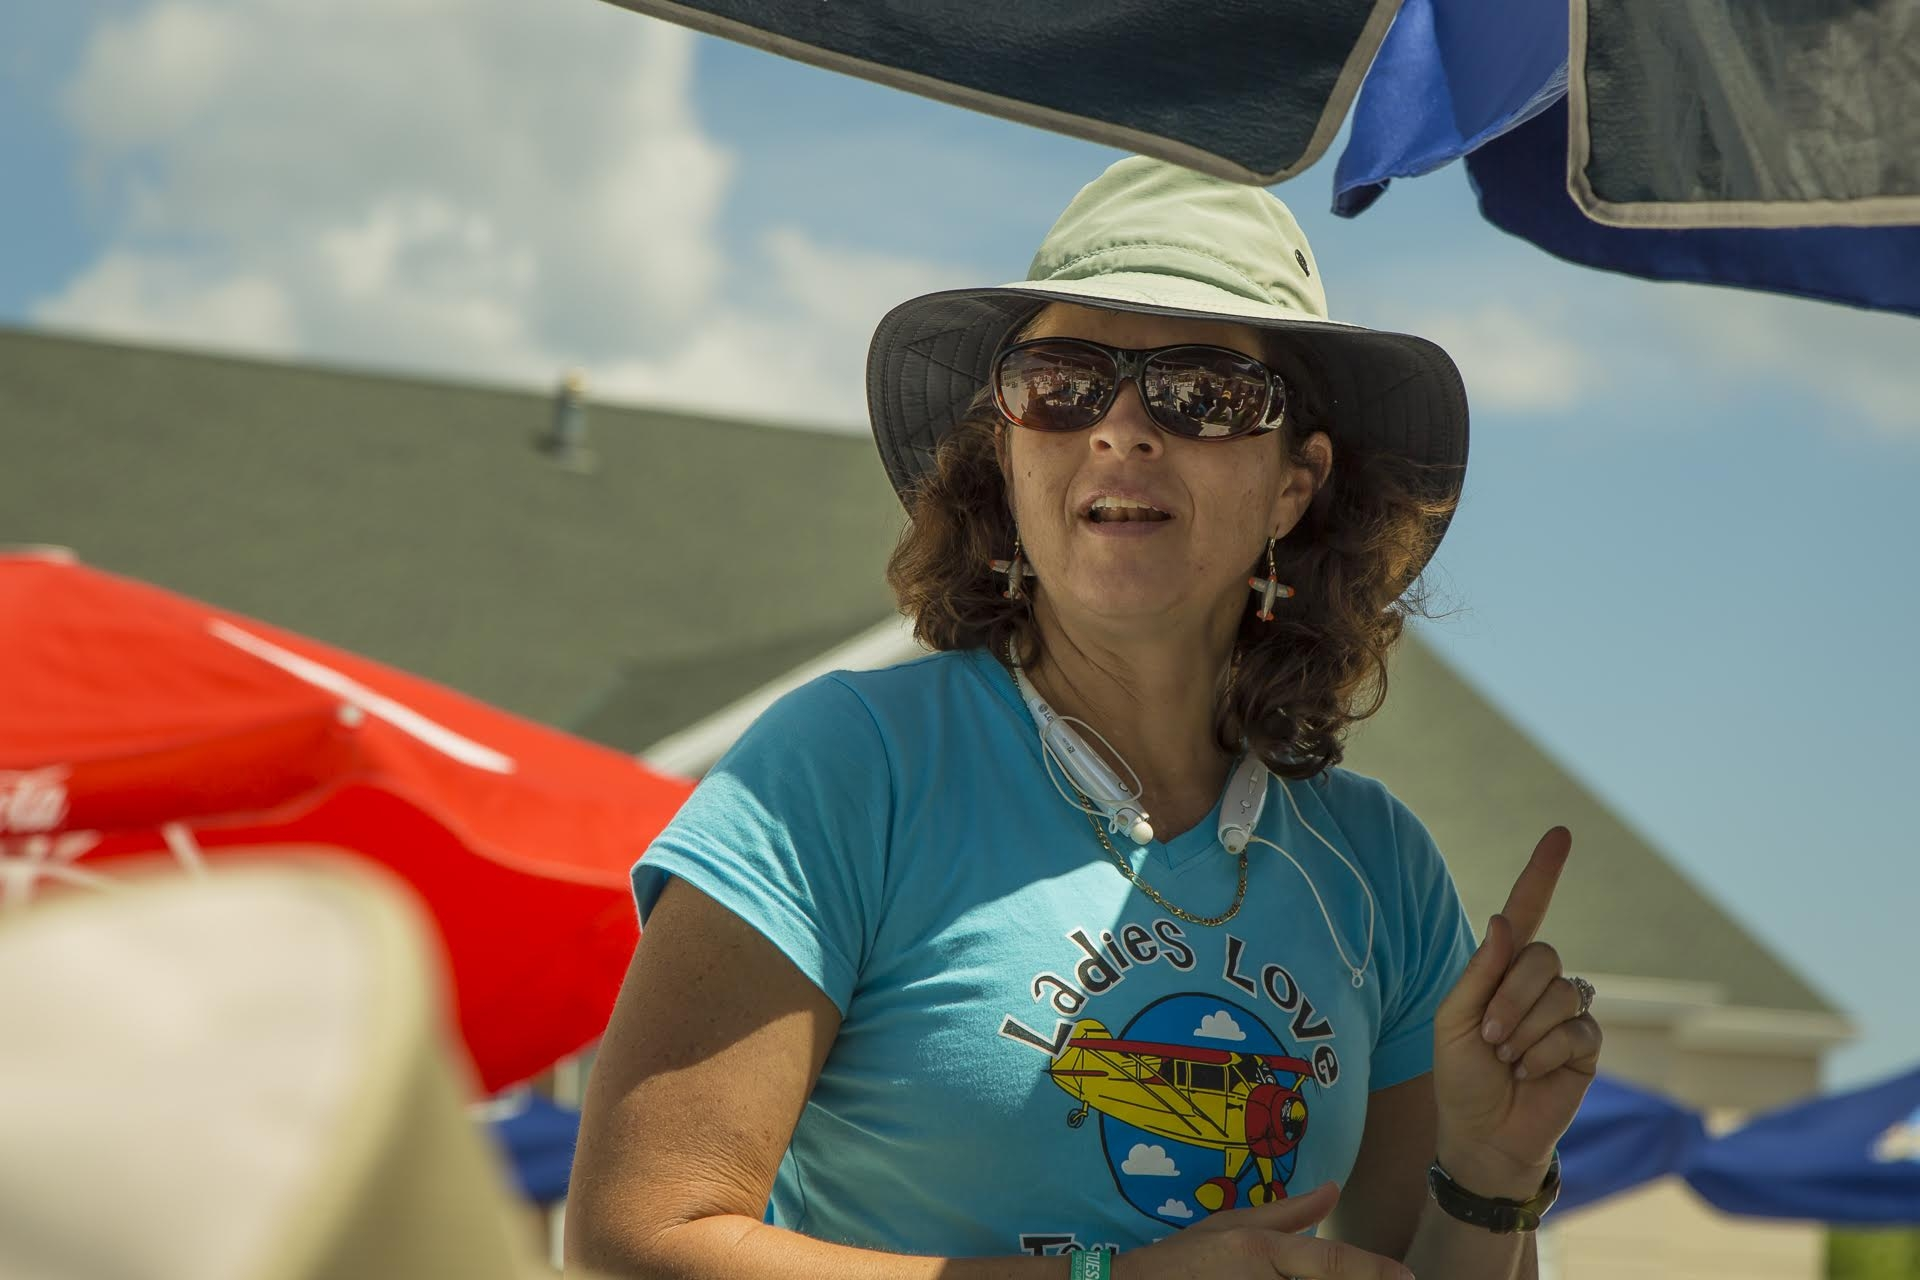 New Video Details What You Need to Know if attending the LadiesLoveTaildraggers Fly-in